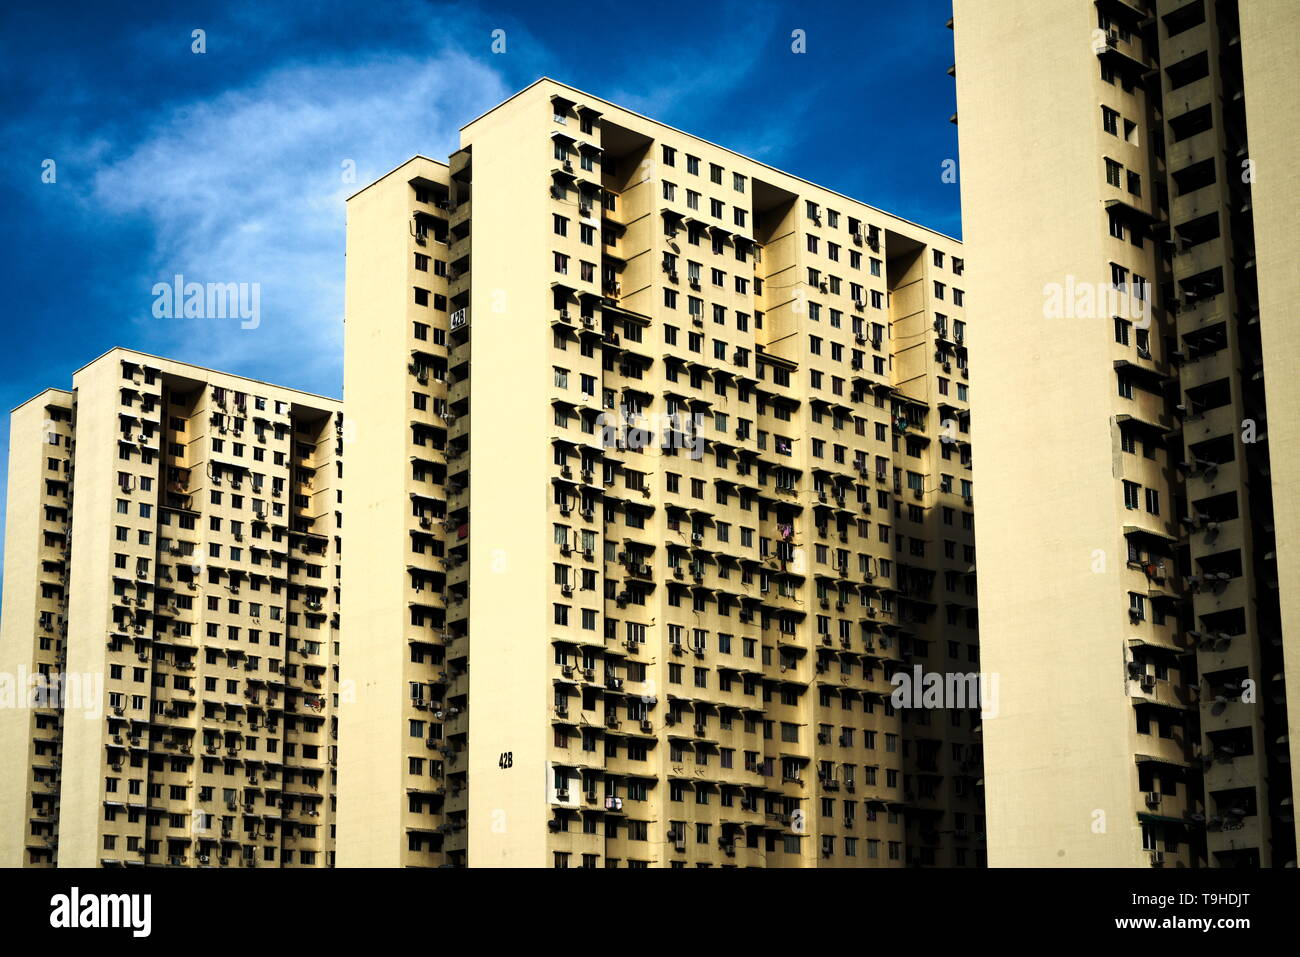 huge housing complex with three blocks of two rows each shot from below - Stock Image